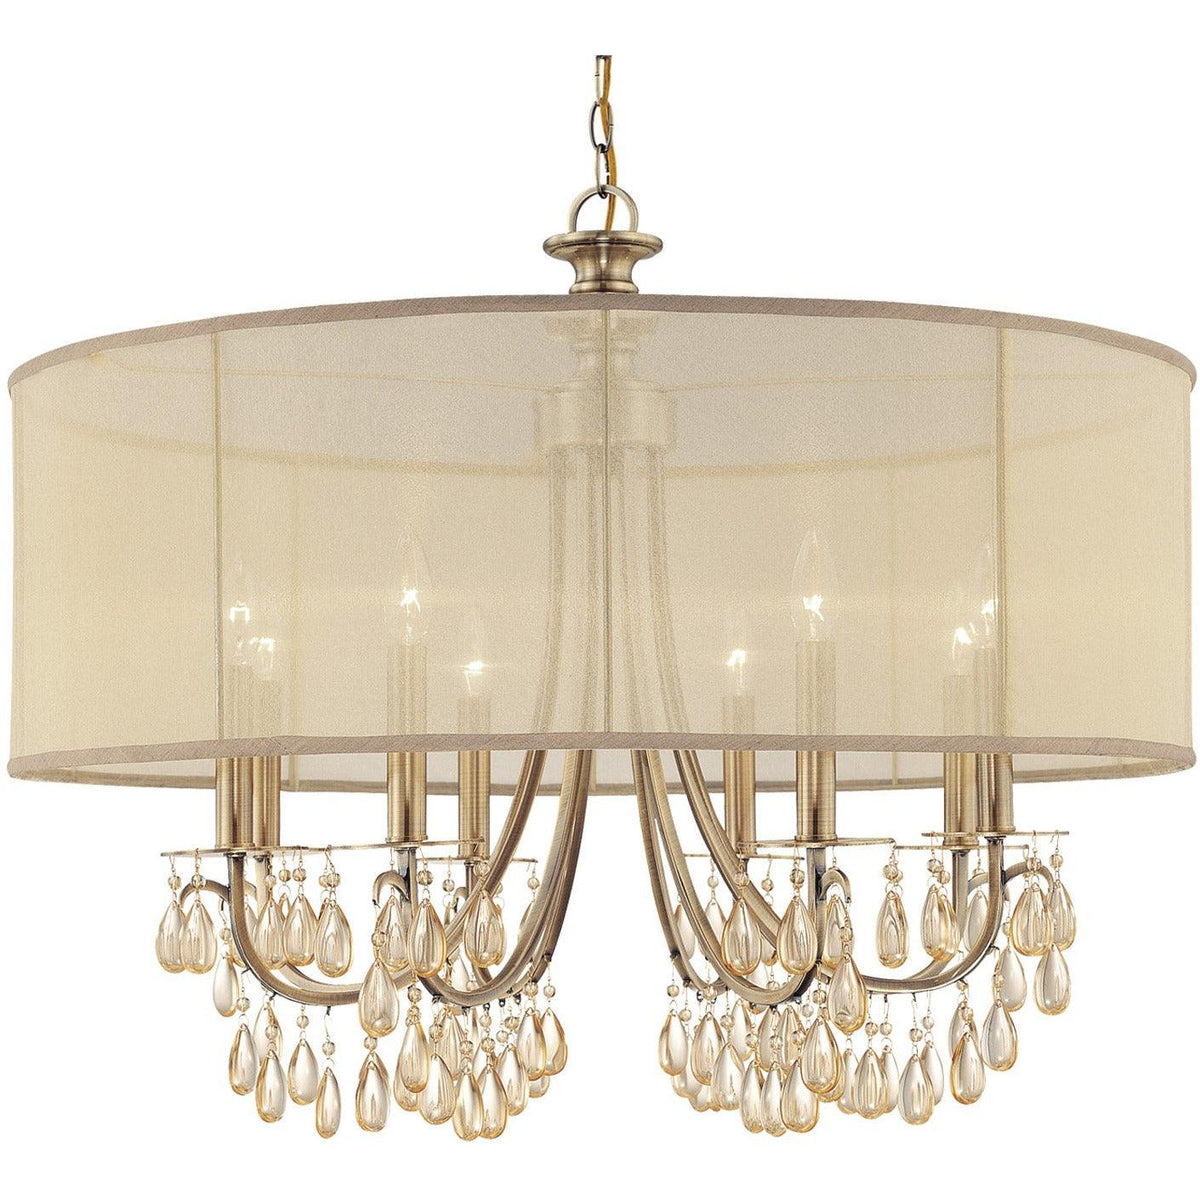 Crystorama - 5628-AB - Eight Light Chandelier - Hampton - Antique Brass